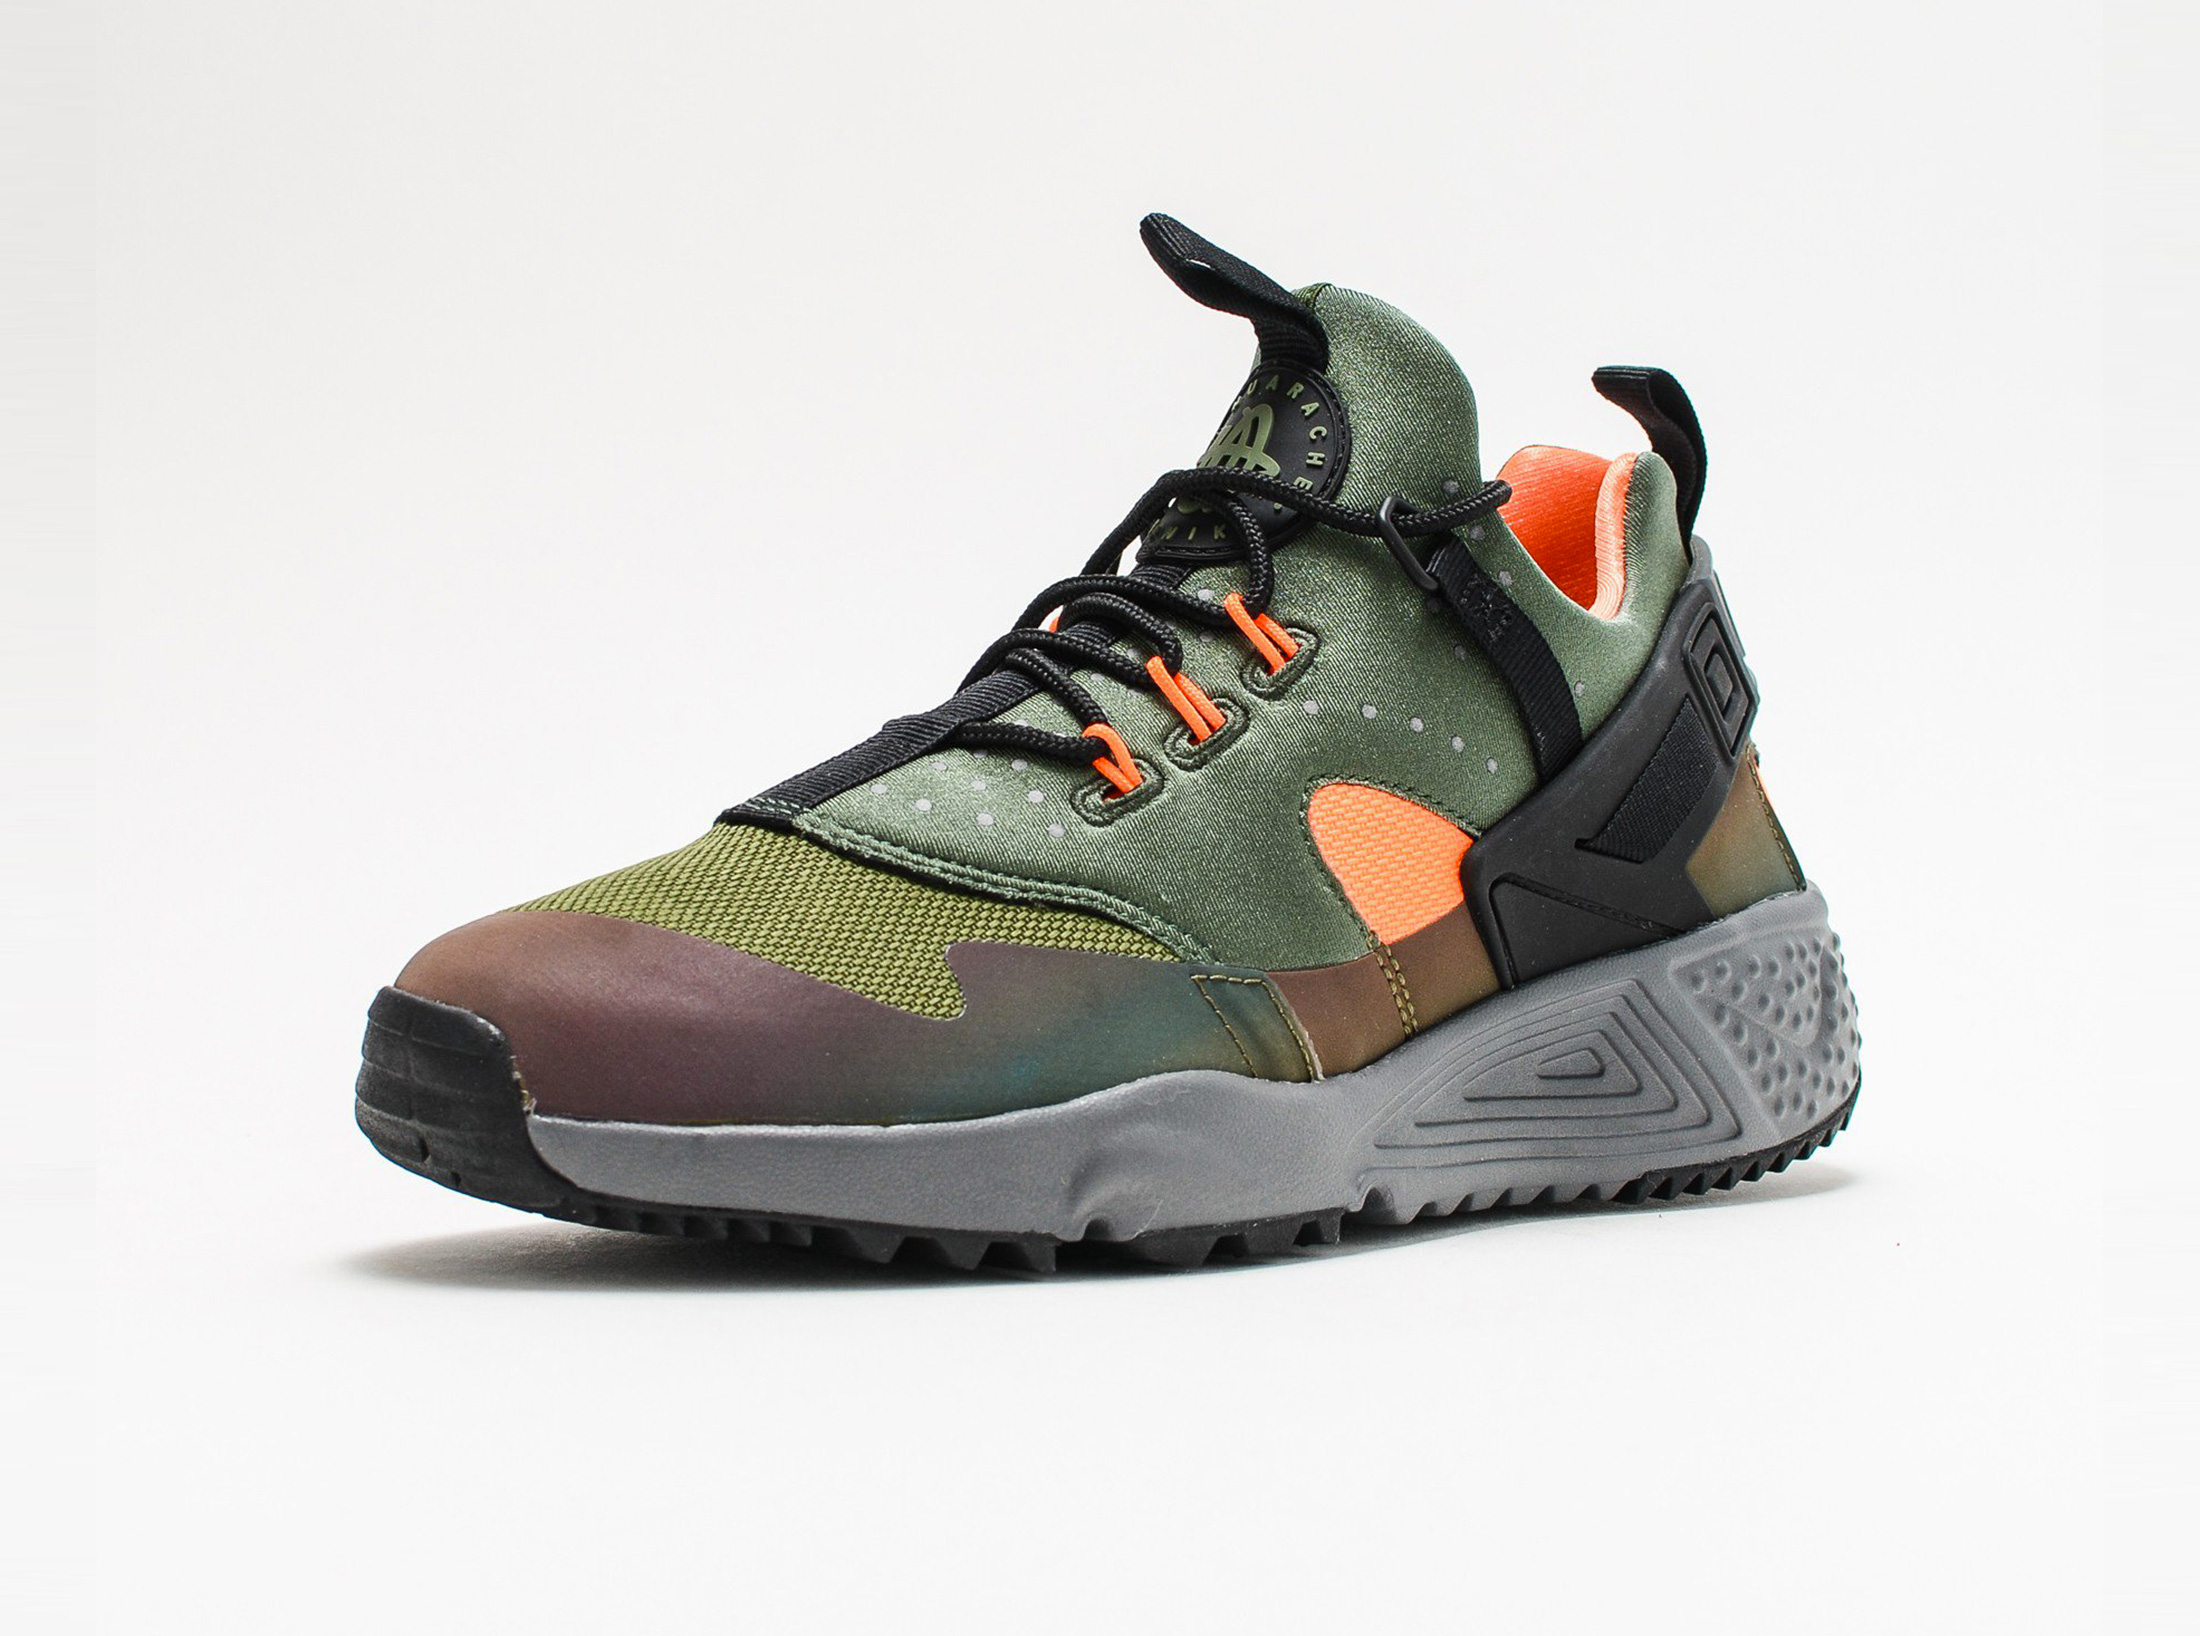 806979-300_sivasdescalzo-Nike-Air-Huarache-Utility-PRM-crbn-grn-ttl-orng-anthracite-806979-300-3